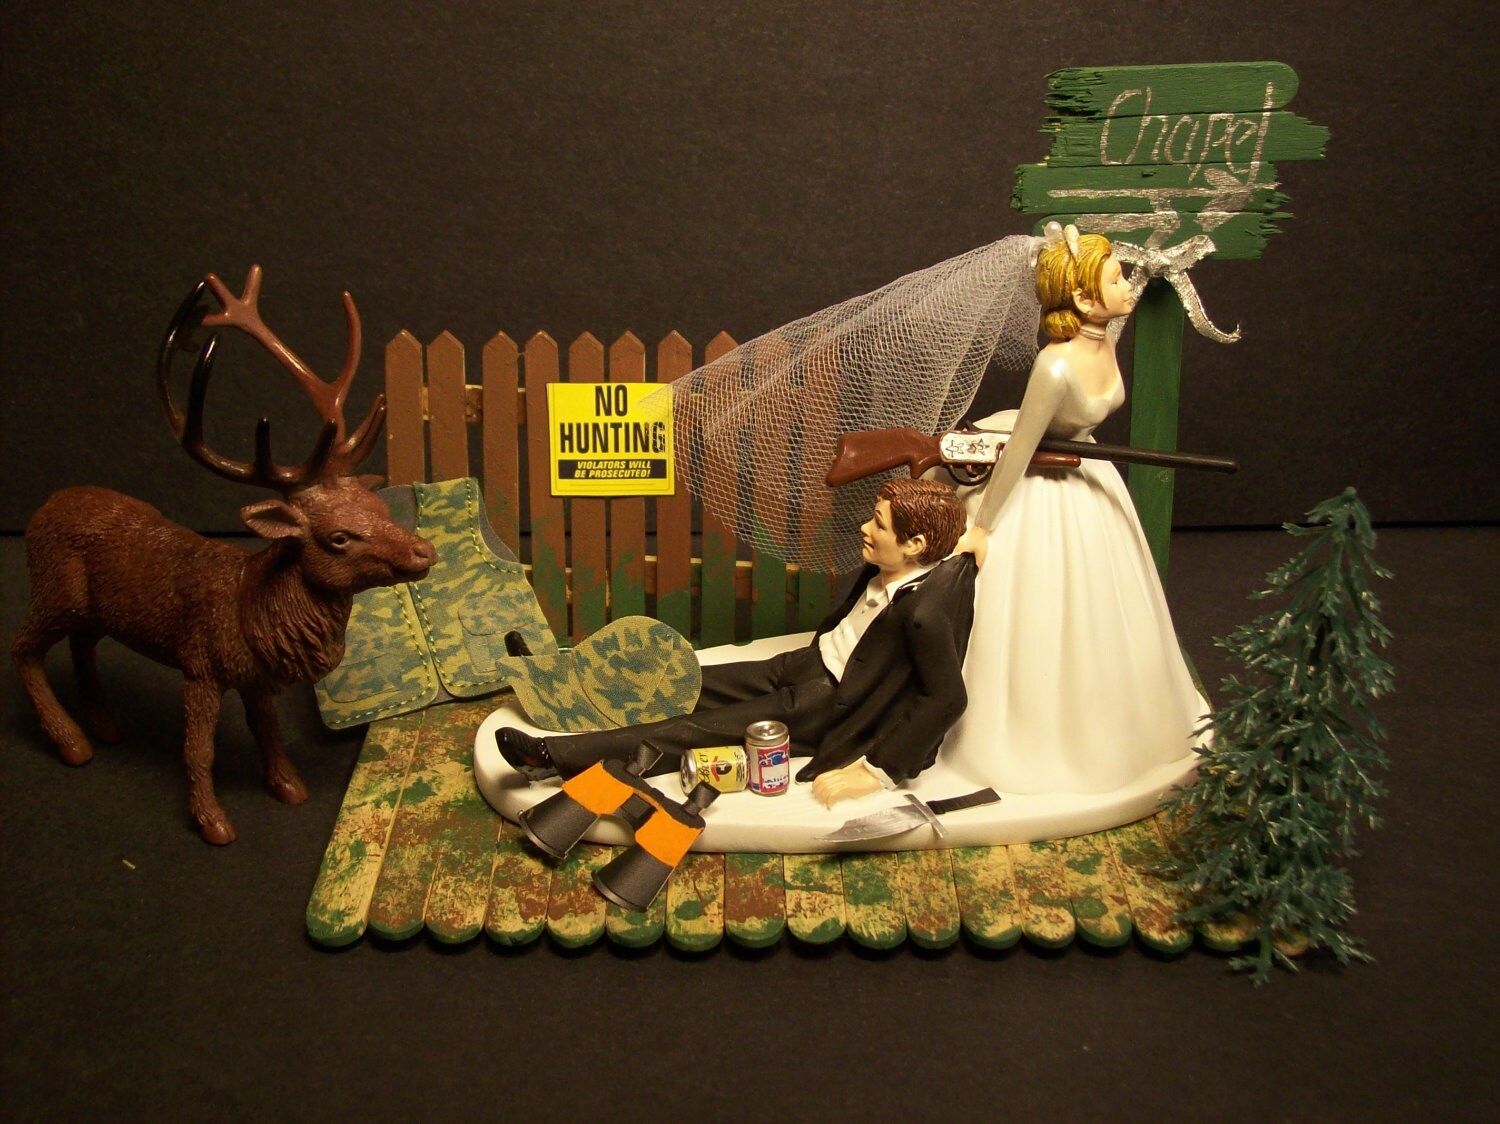 NO HUNTING DEER with Chapel Sign Bride and Groom Wedding Cake